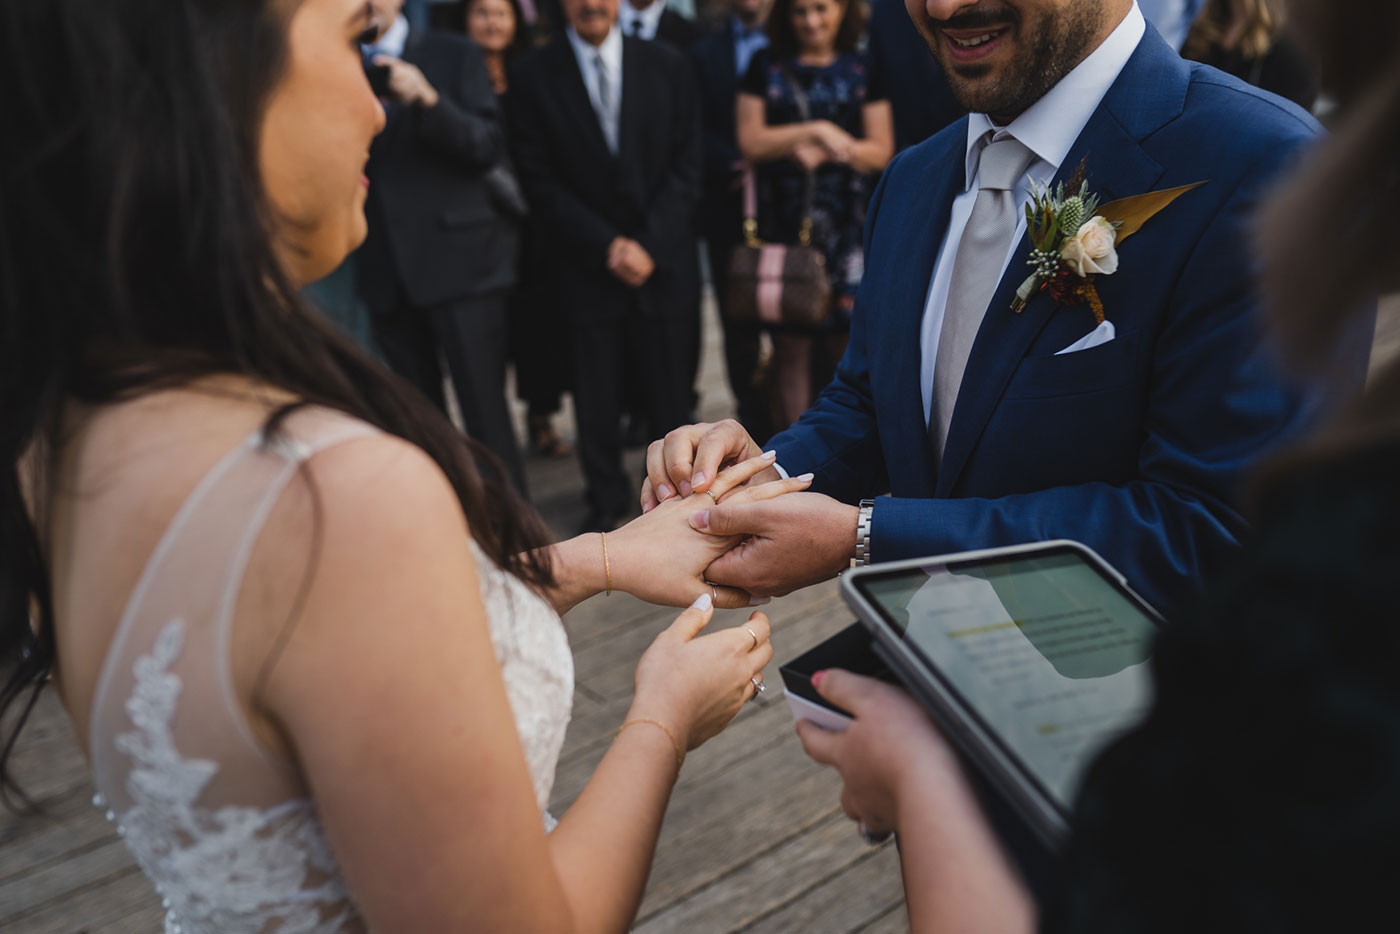 wedding ceremony Portrait of bride and groom at an elopement at Jane's Carousel in Brooklyn Bridge Park by Weddings by Hanel